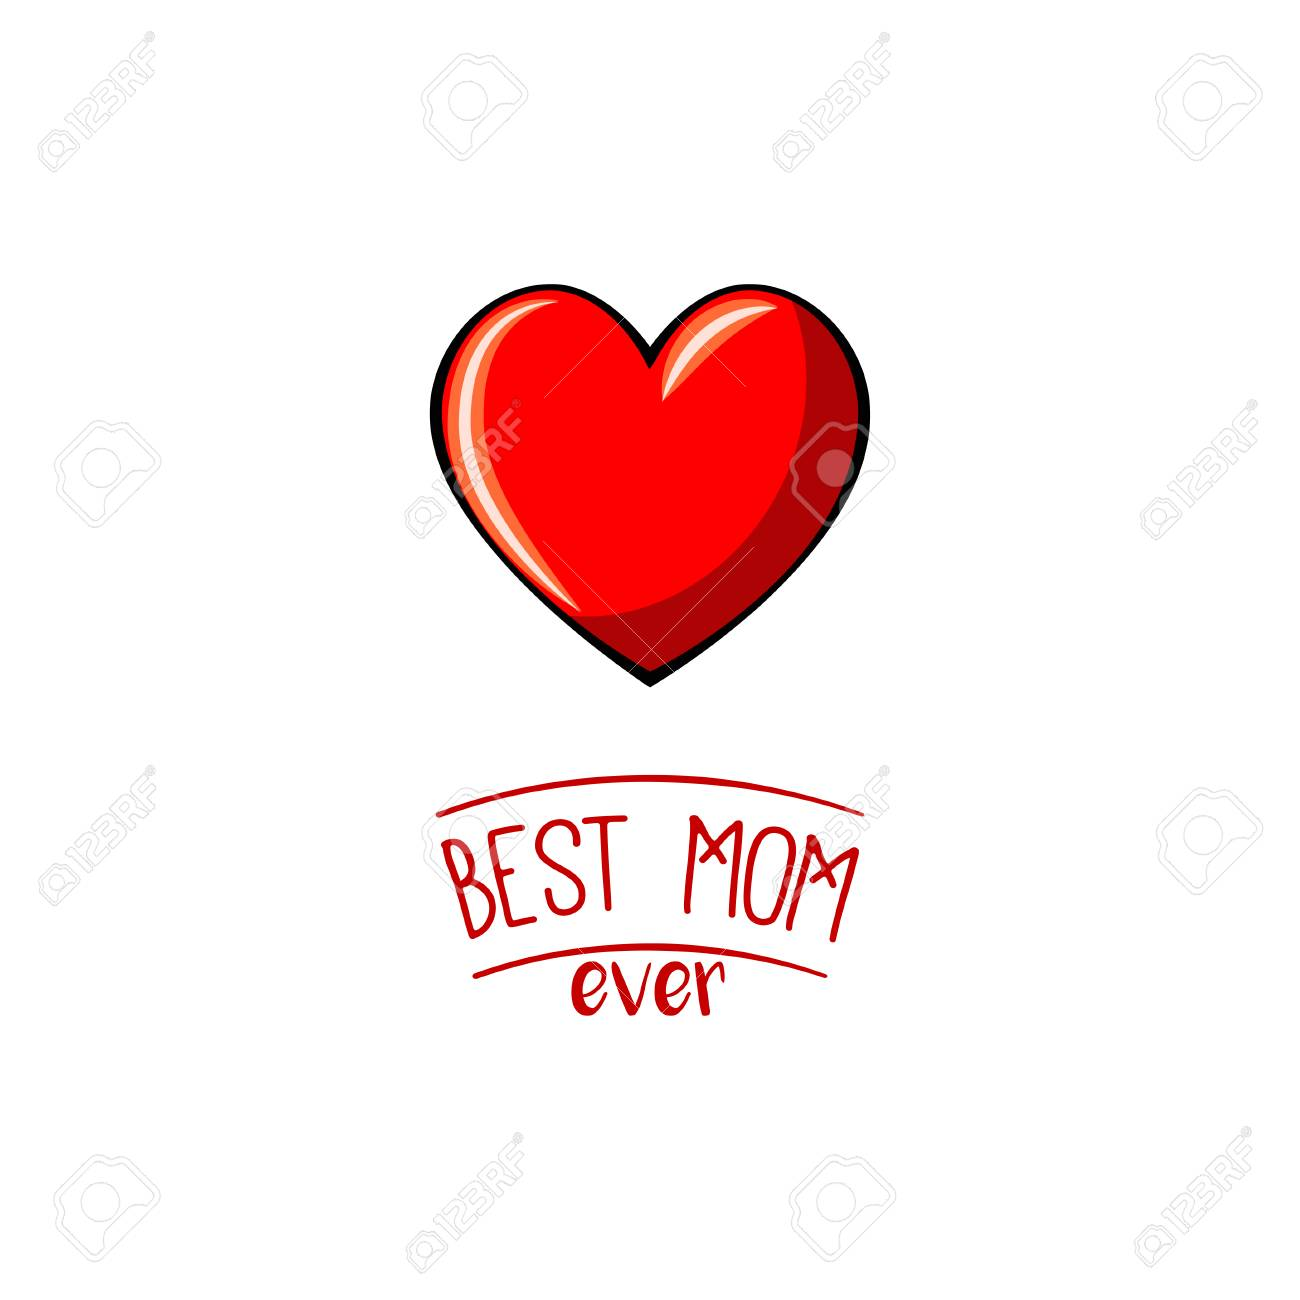 9b44f84ca1 Mother's day greeting card with heart. Best mom ever lettering. Vector  Illustration, isolated